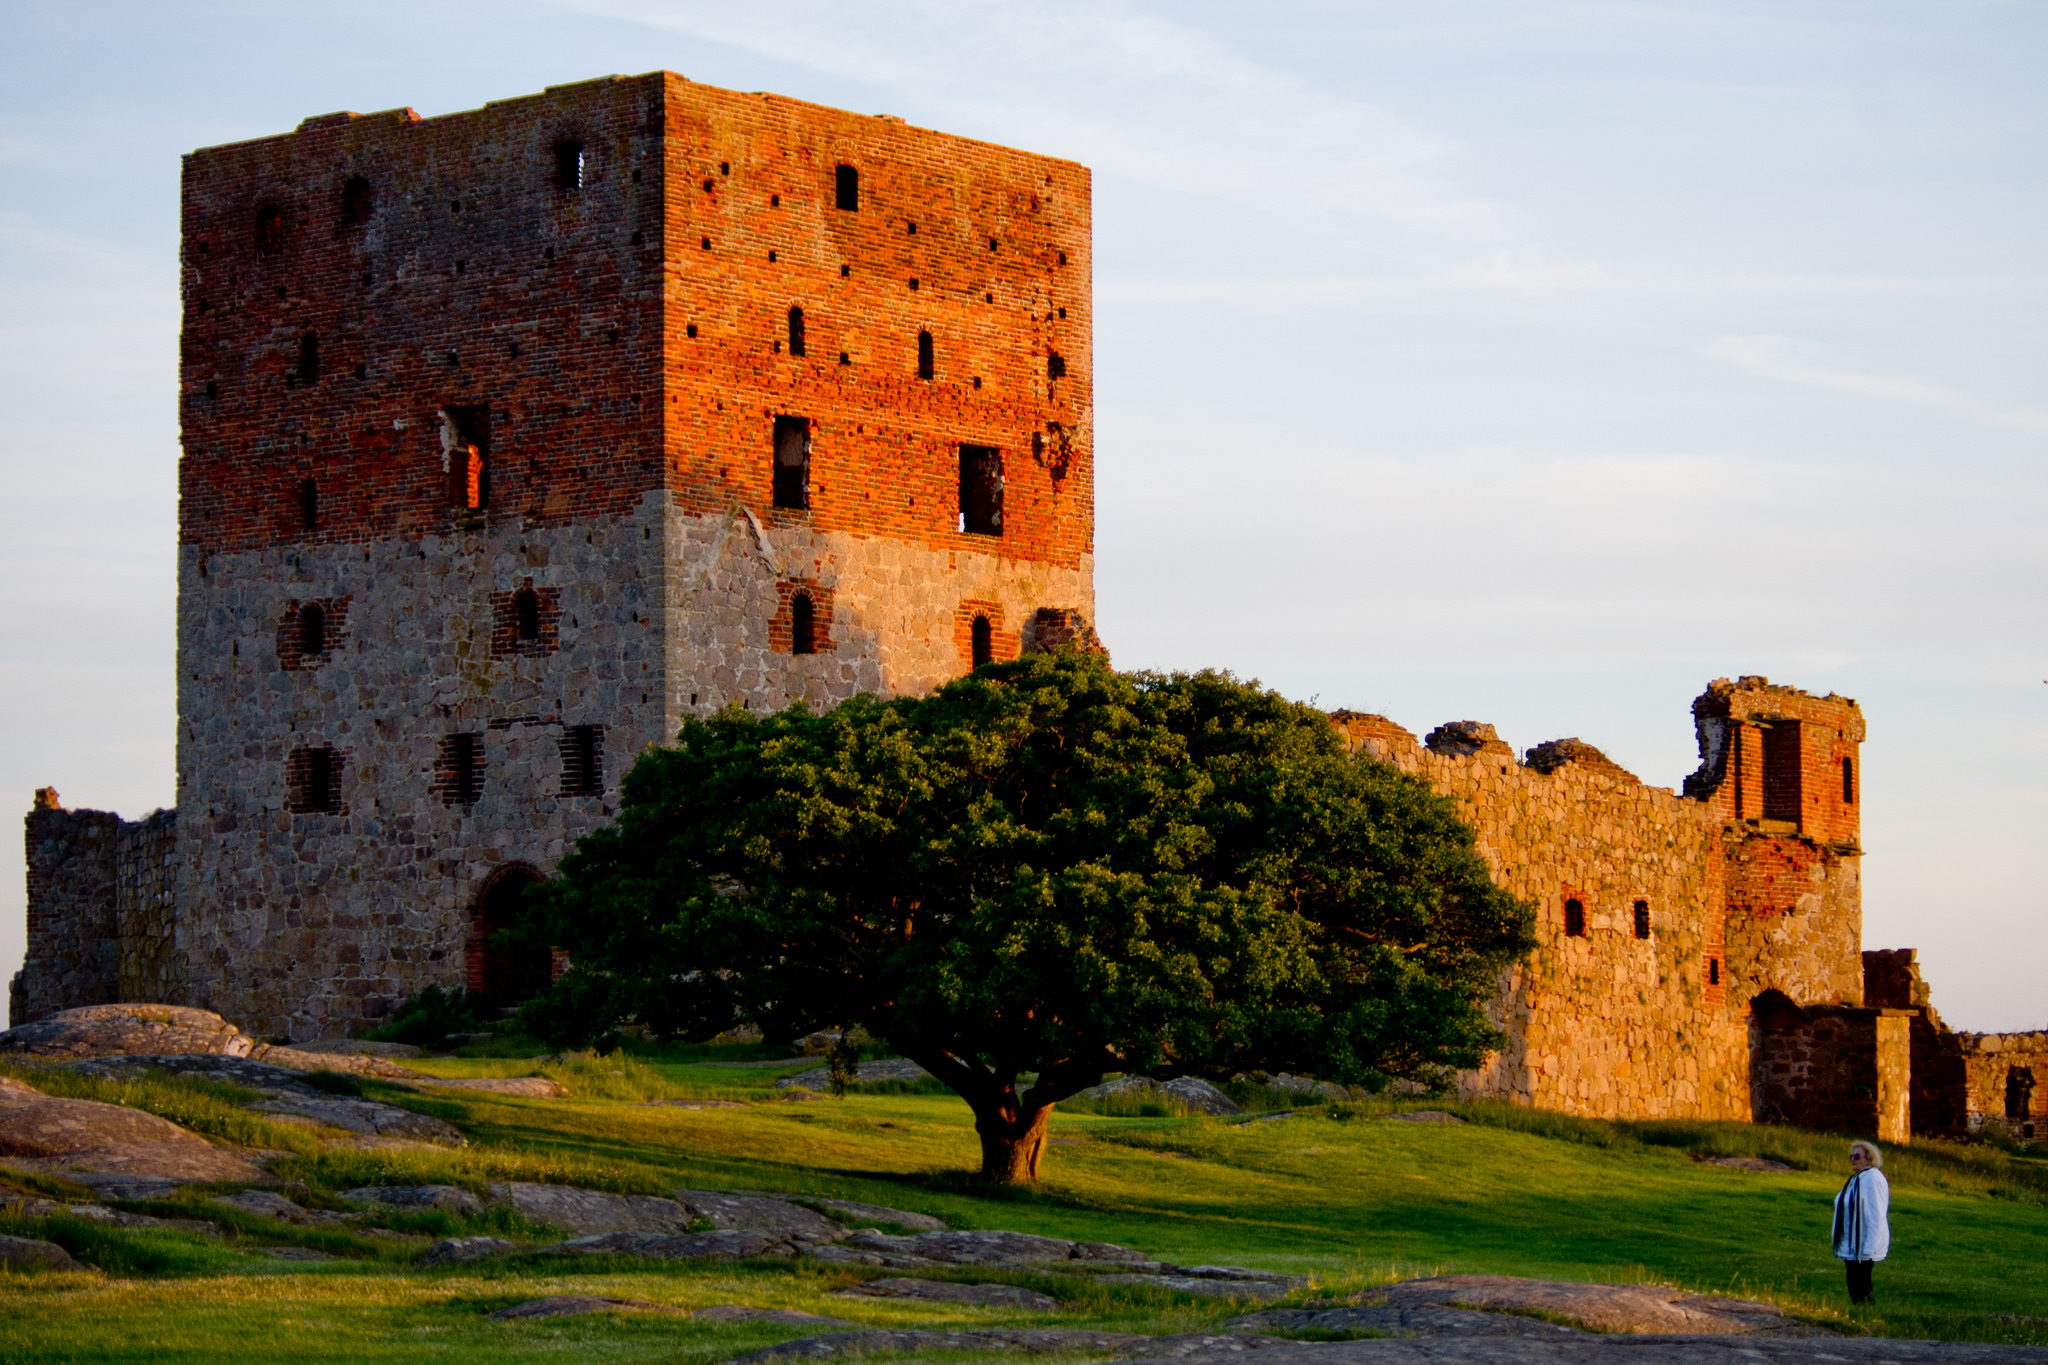 Hammershus is one of the biggest tourist attraction on Bornholm